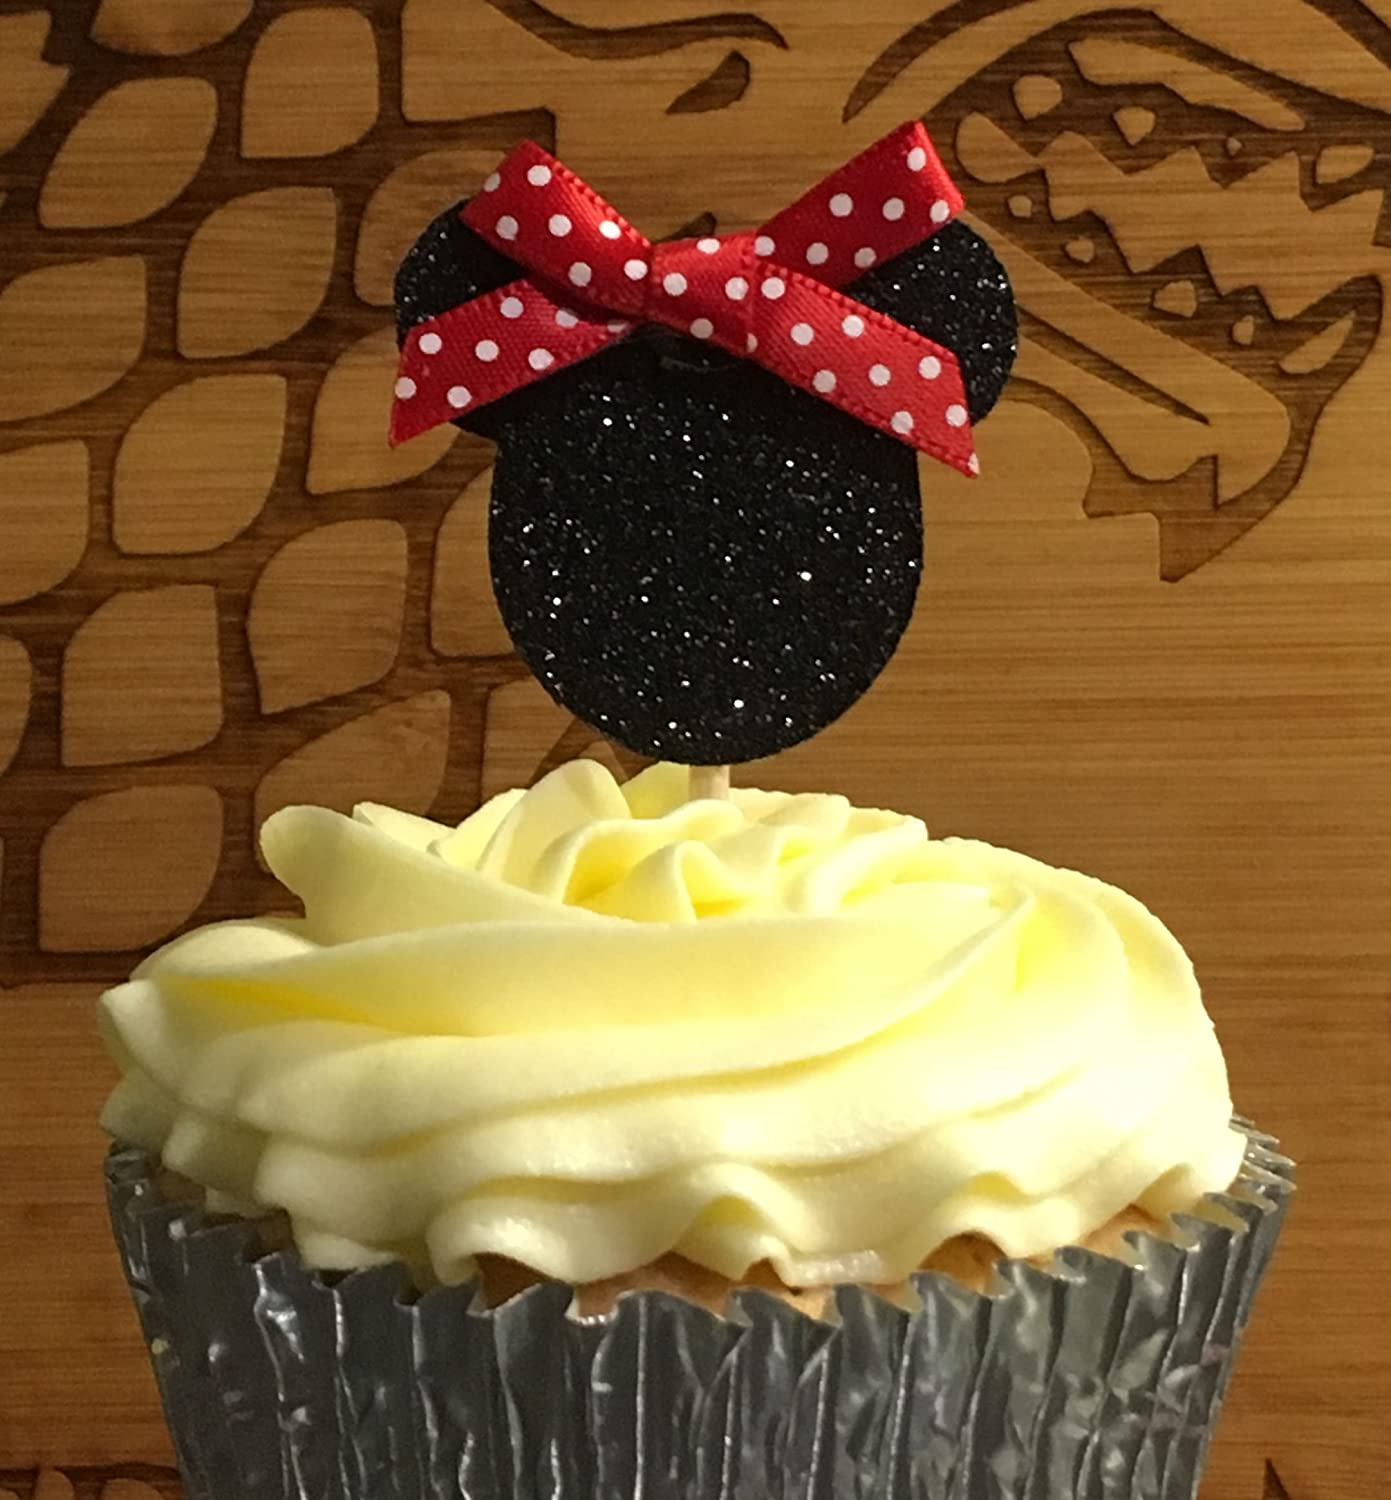 12 Minnie Mouse Cake Pick Topper with Bows for Cup Cakes (Not edible) Glitter Toppers